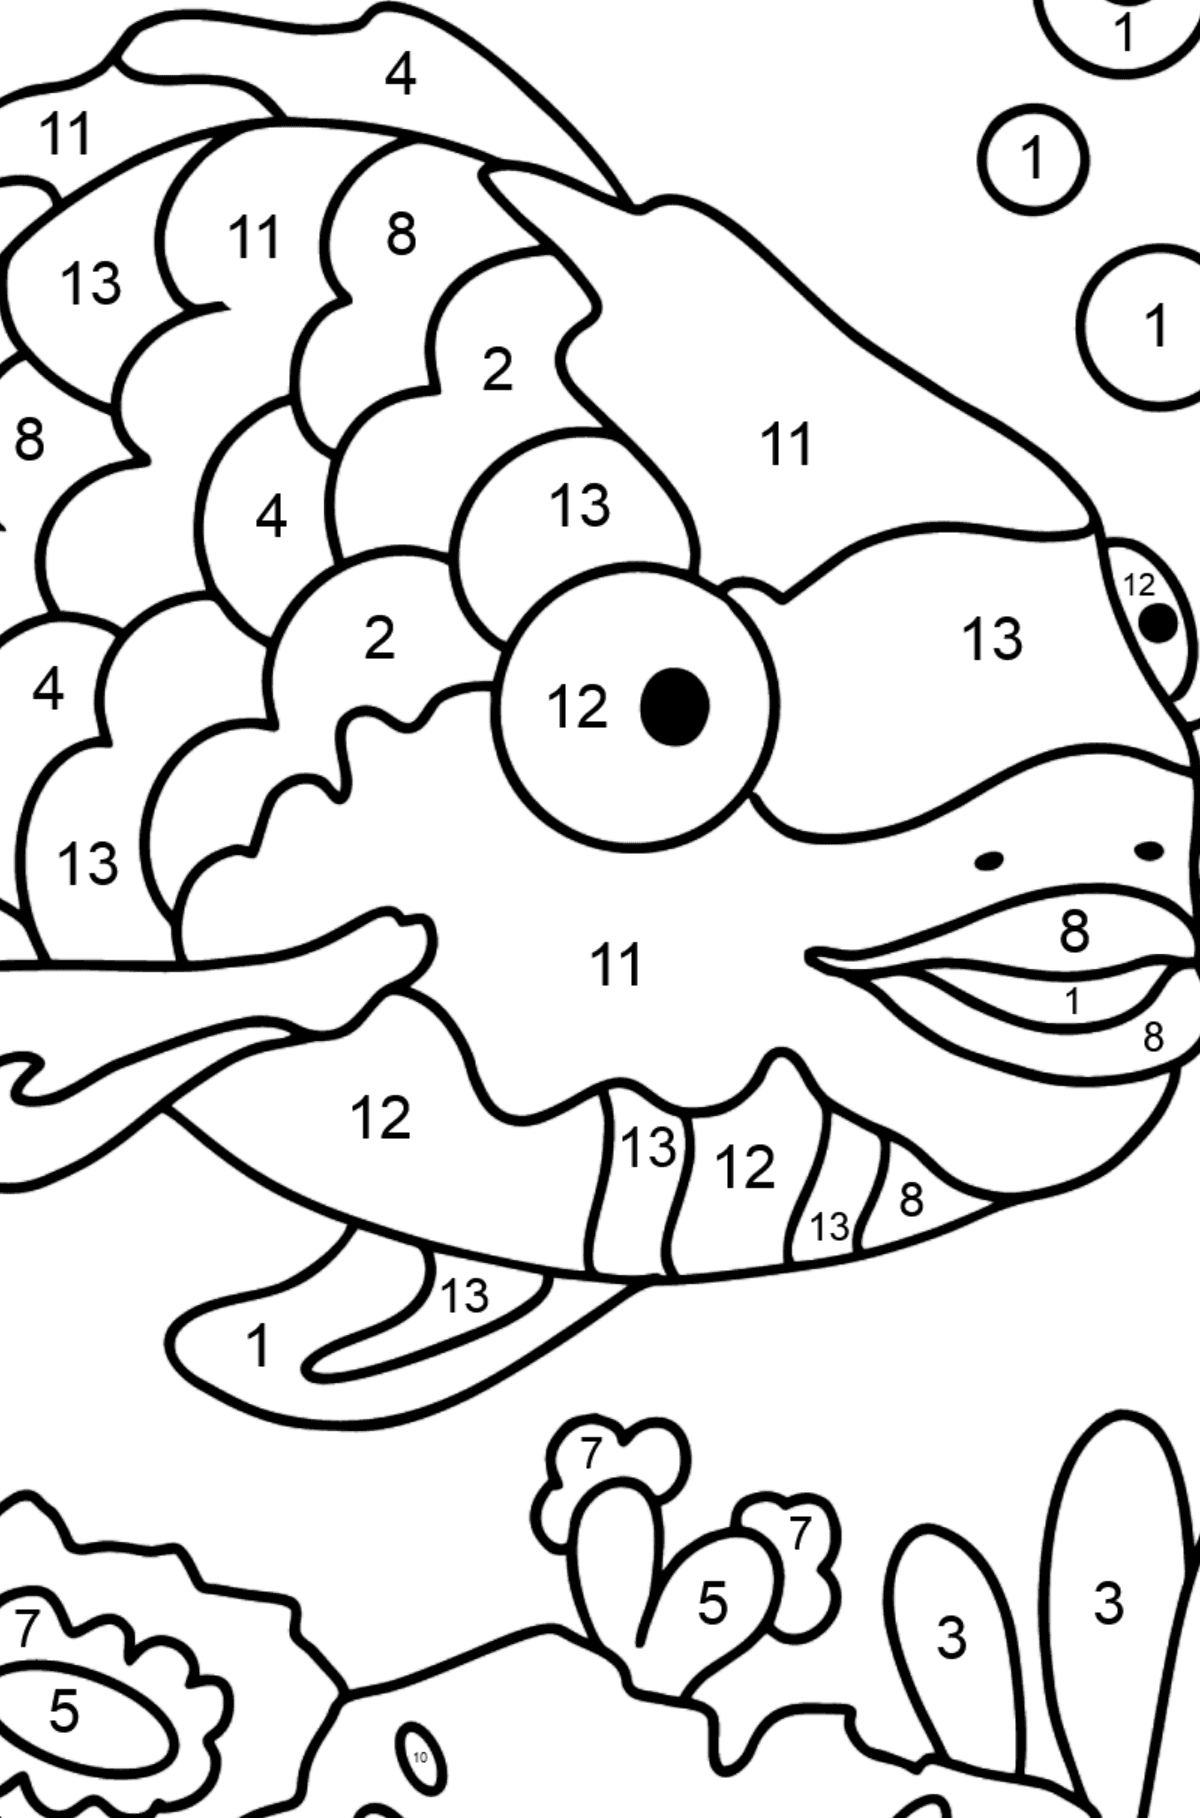 Coloring Page - An Exotic or Rainbow fish - Coloring by Numbers for Kids